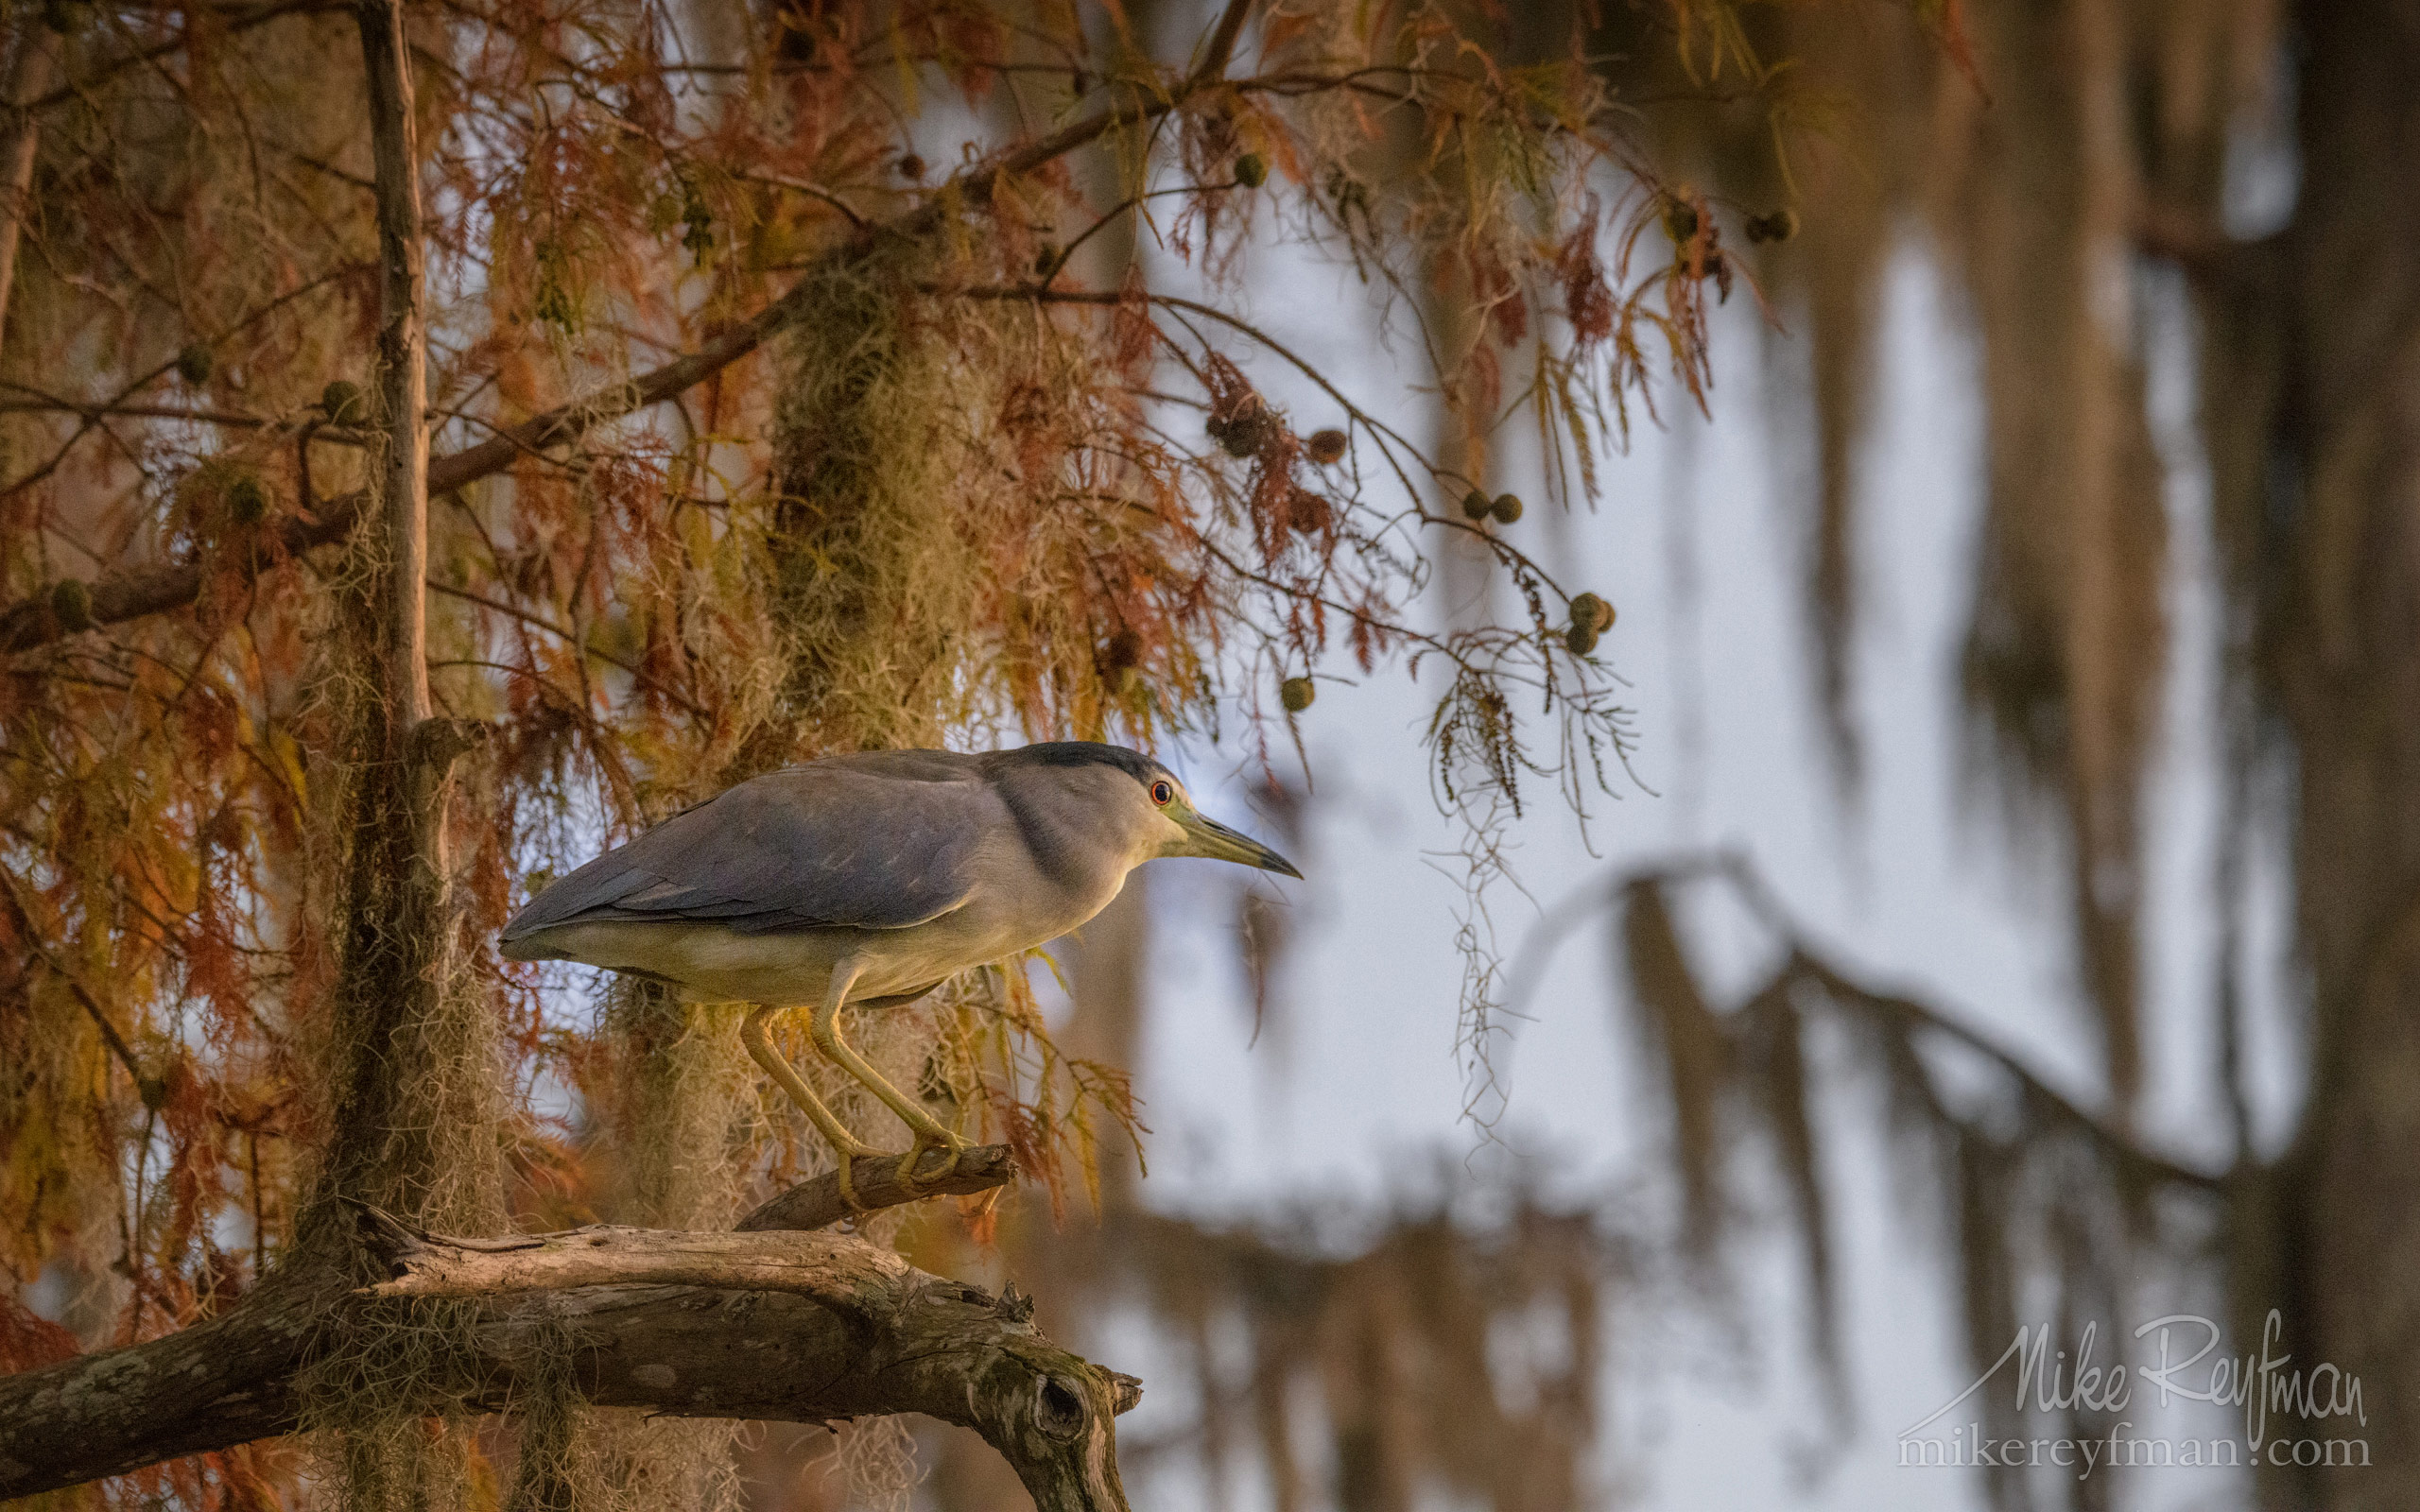 Black-Crowned Night Heron in the Bald Cypress tree. Lake Martin, Louisiana, US 060-LT1-50A4603.jpg - Bold Cypress and Tupelo Trees in the swamps of Atchafalaya River Basin. Caddo, Martin and Fousse Lakes. Texas/Louisiana, USA. - Mike Reyfman Photography